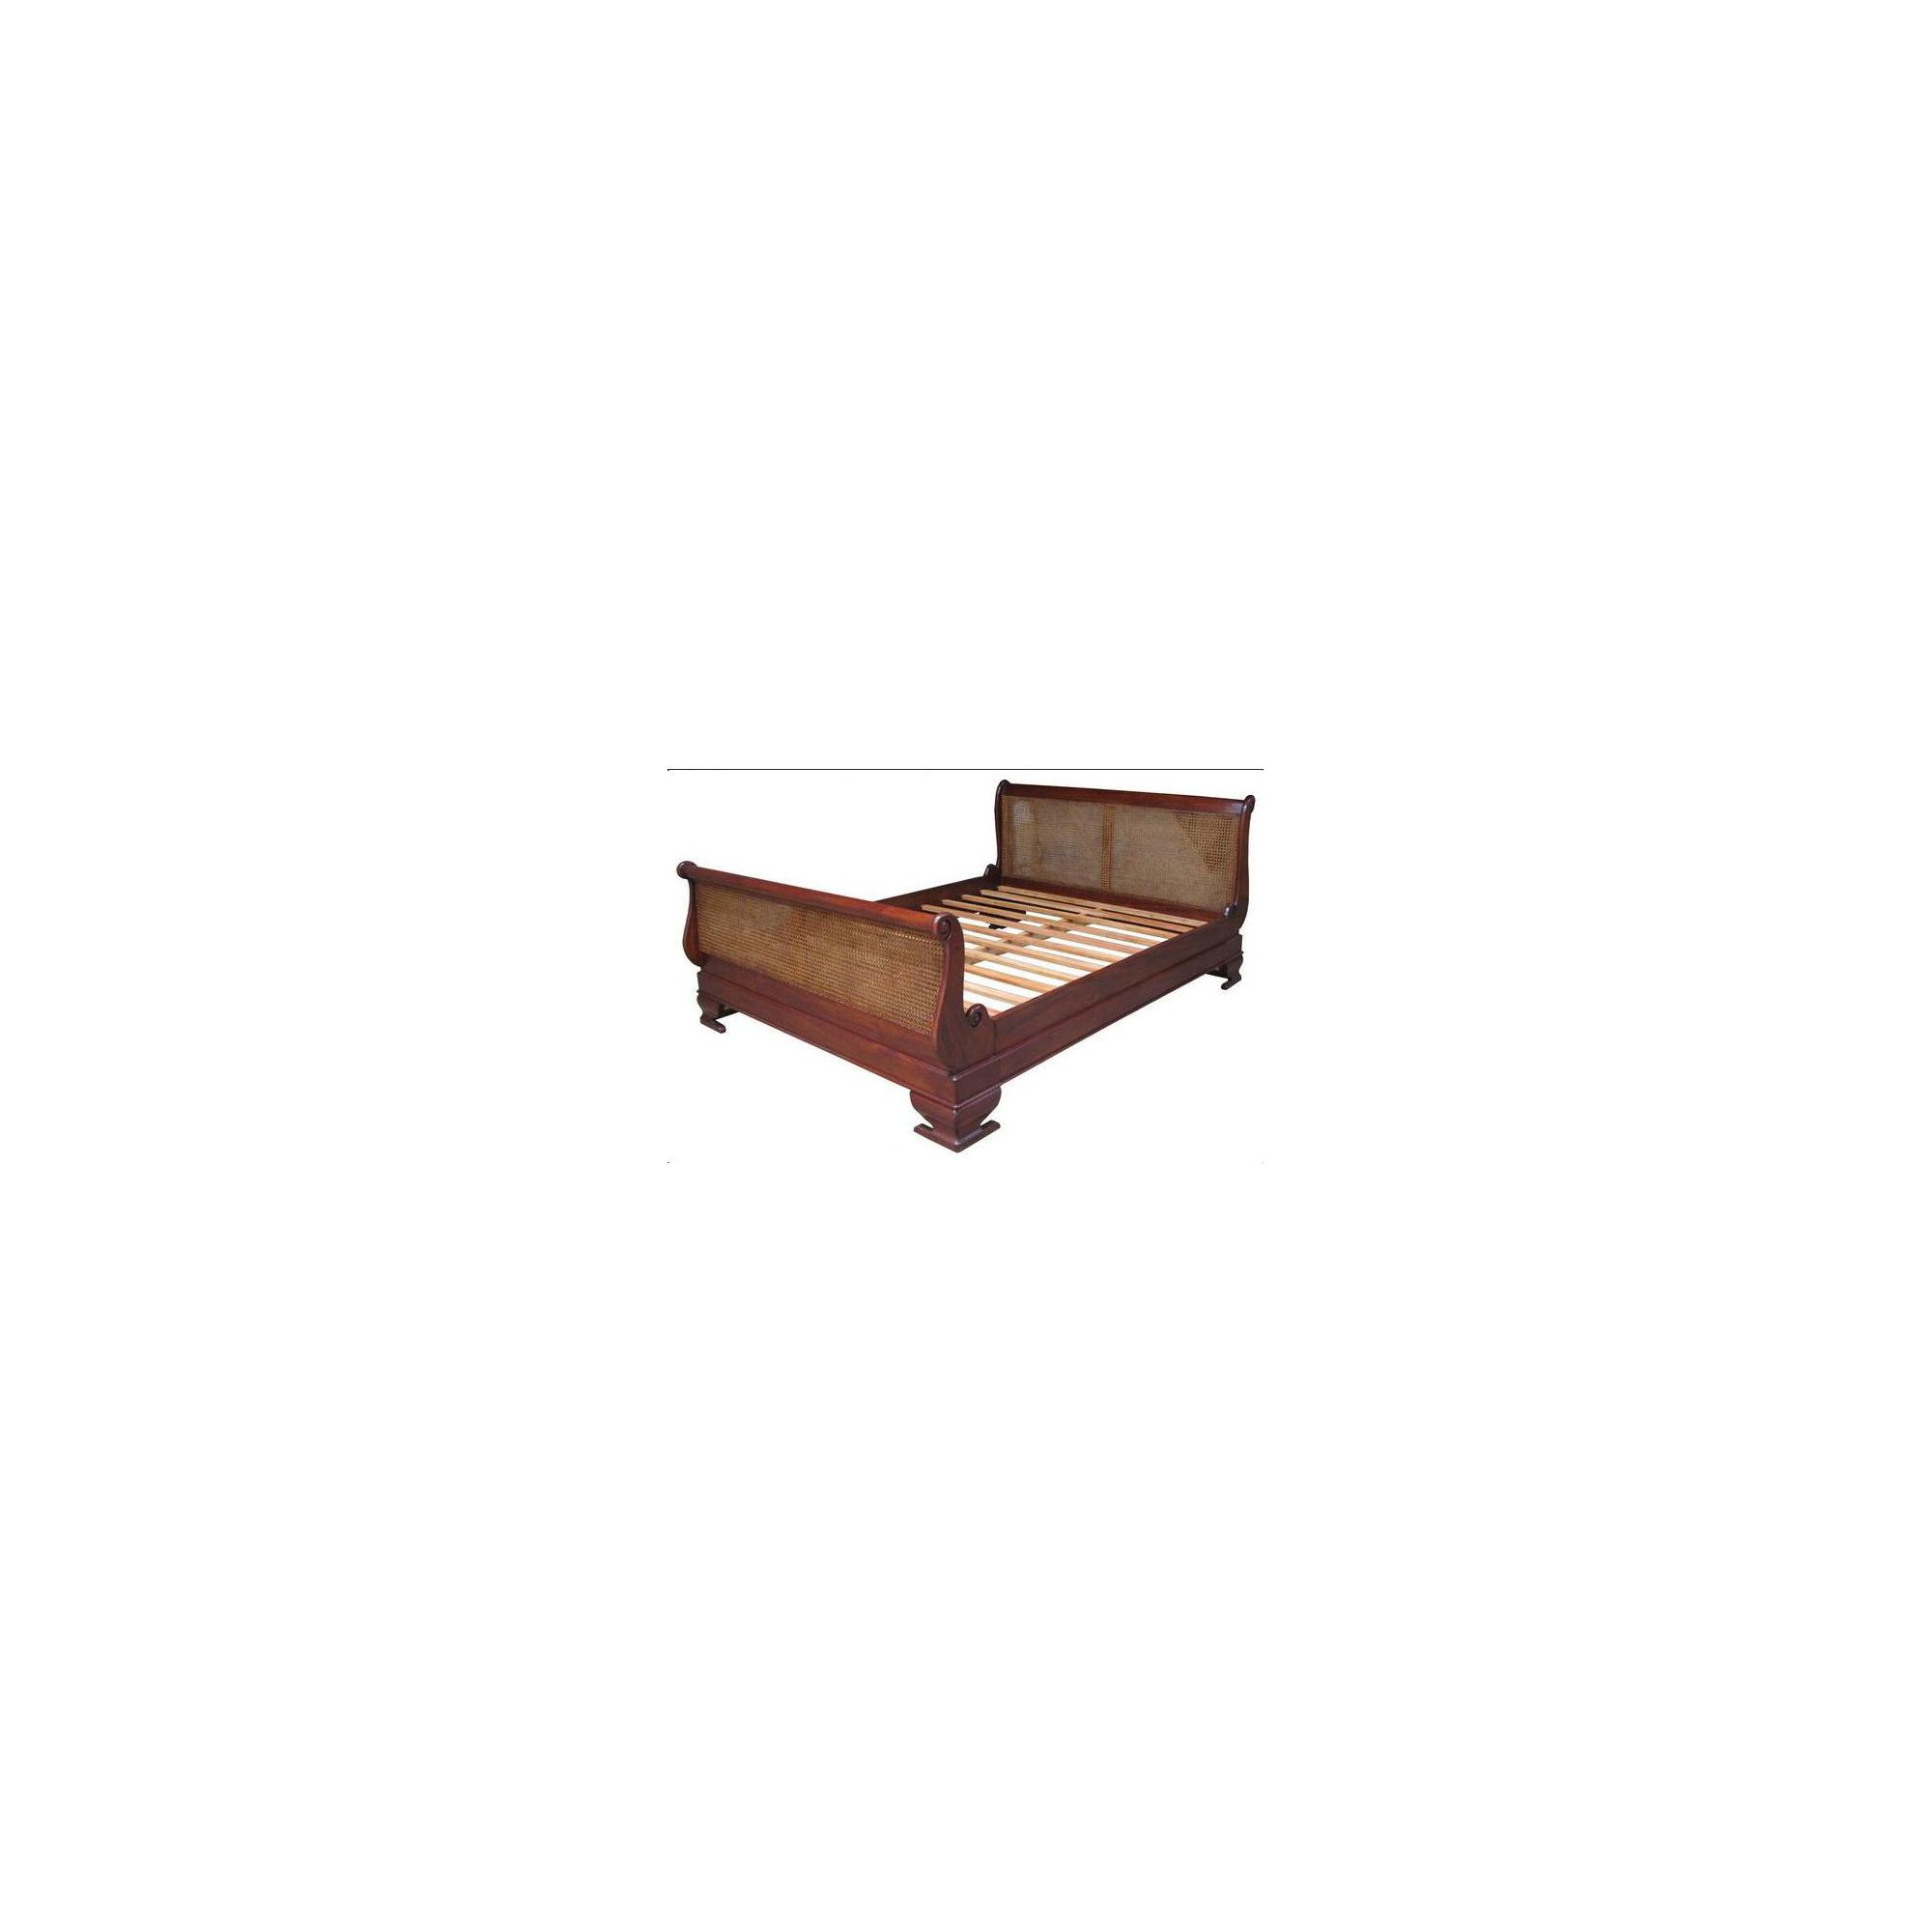 Lock stock and barrel Mahogany Rattan Sleigh Bed in Mahogany - Double - Antique White at Tesco Direct